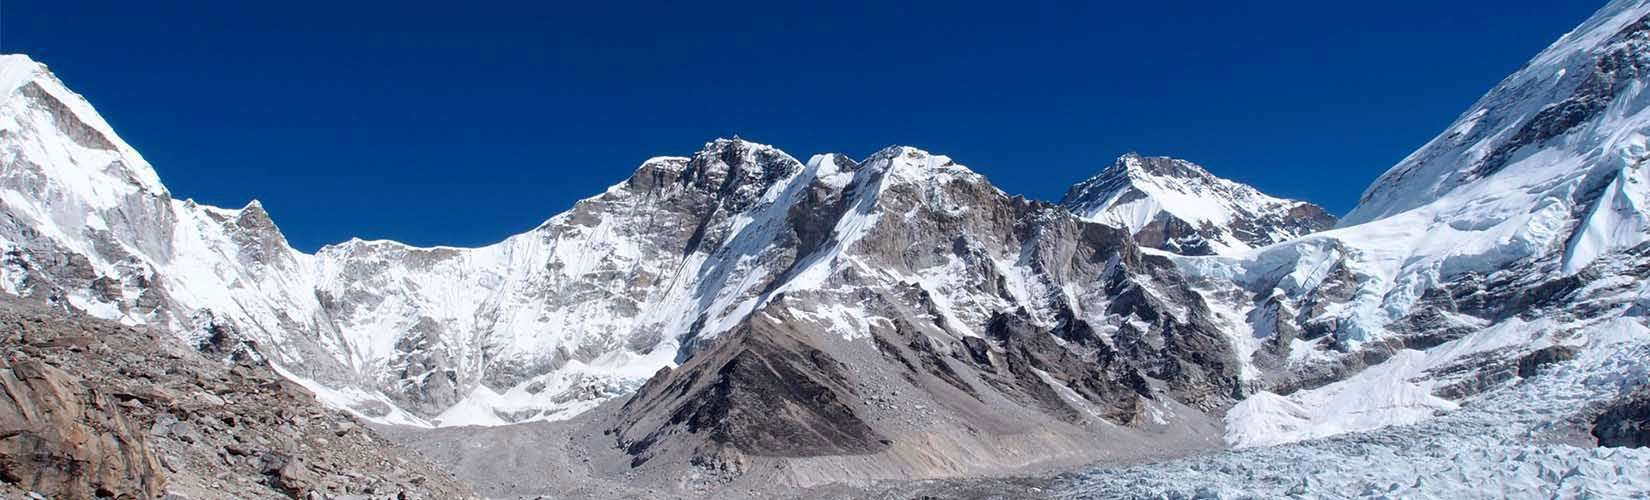 Everest Base Camp Weather June, July and August